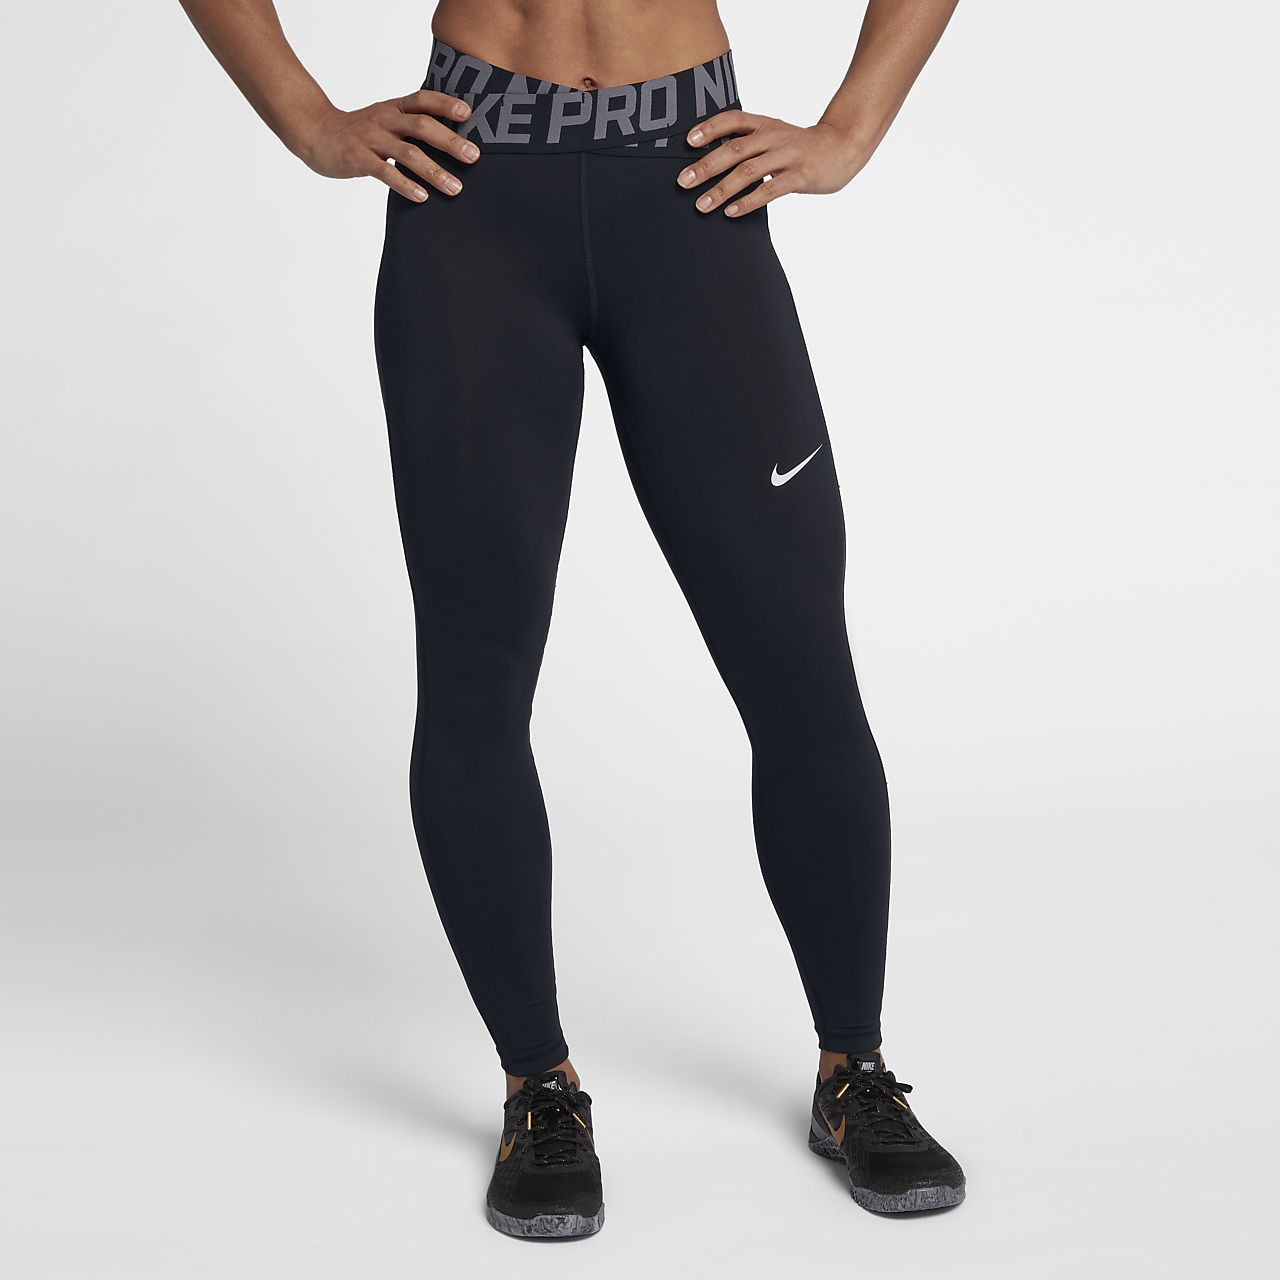 a1ace81be2ede Nike Pro Intertwist Women's High-Rise Training Tights. Nike.com AE